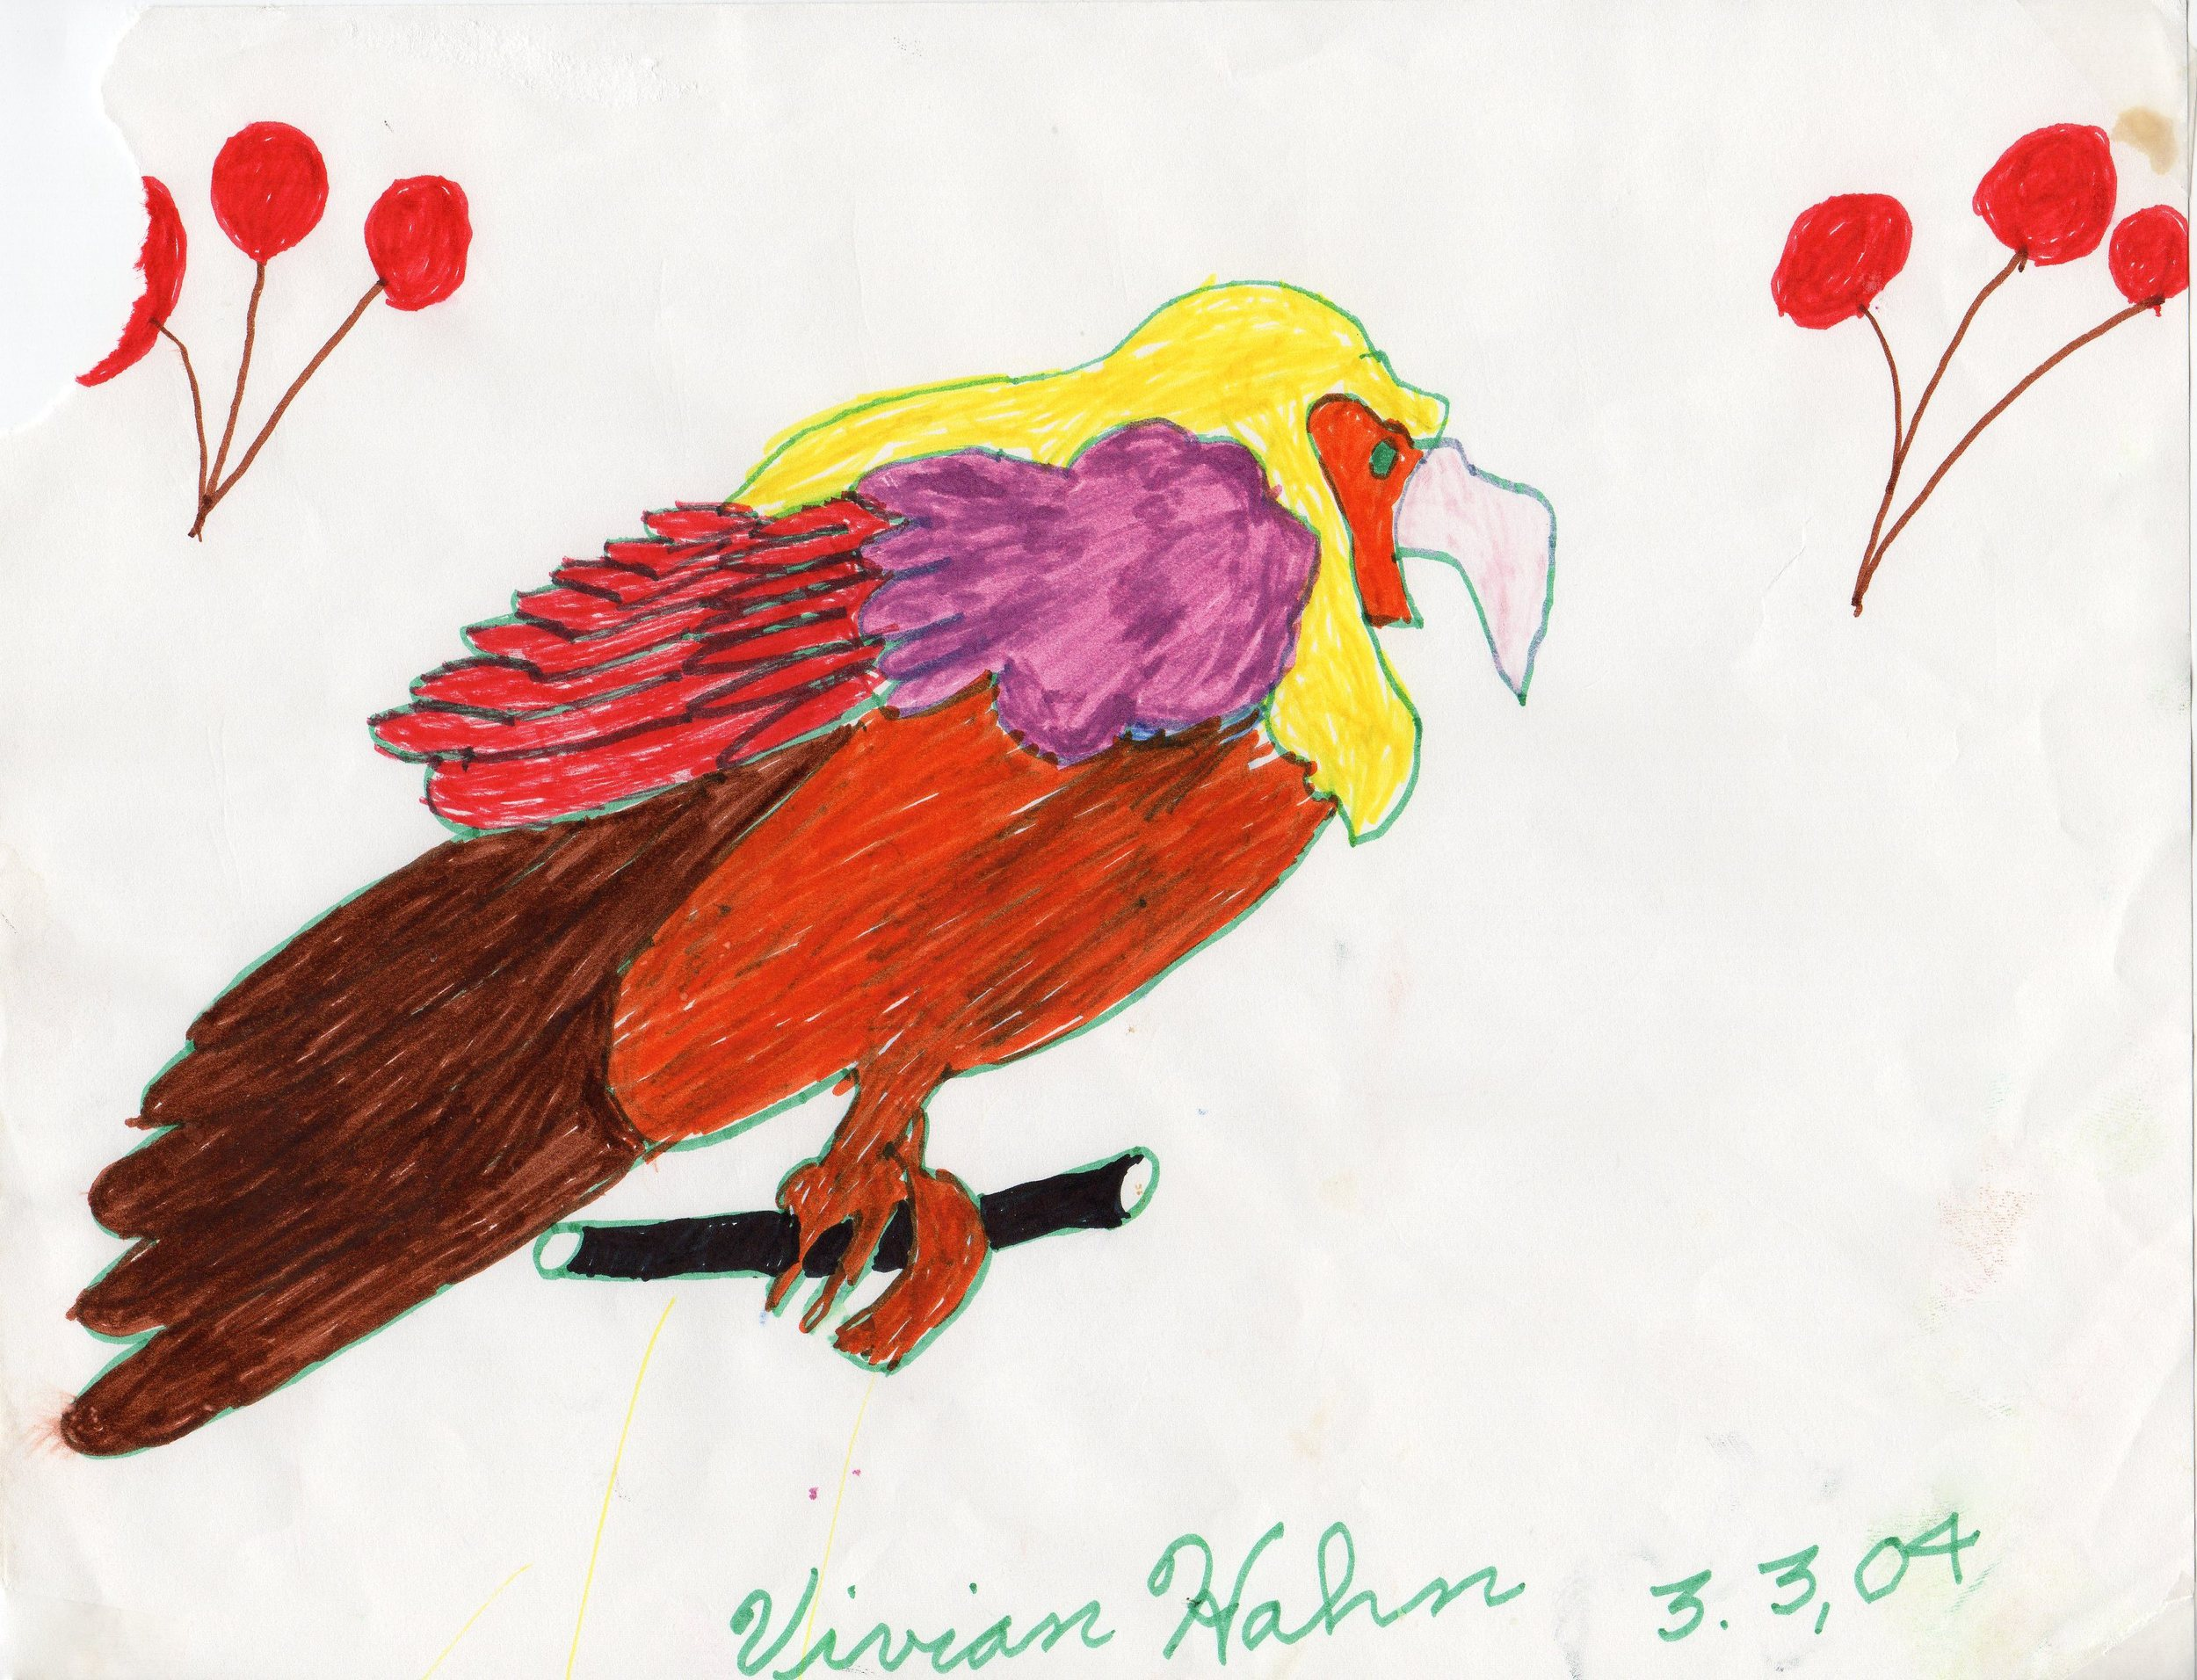 Eagle  Vivian Hahn 3/3/2004 Color Pencil on Paper prints $20/originals $50